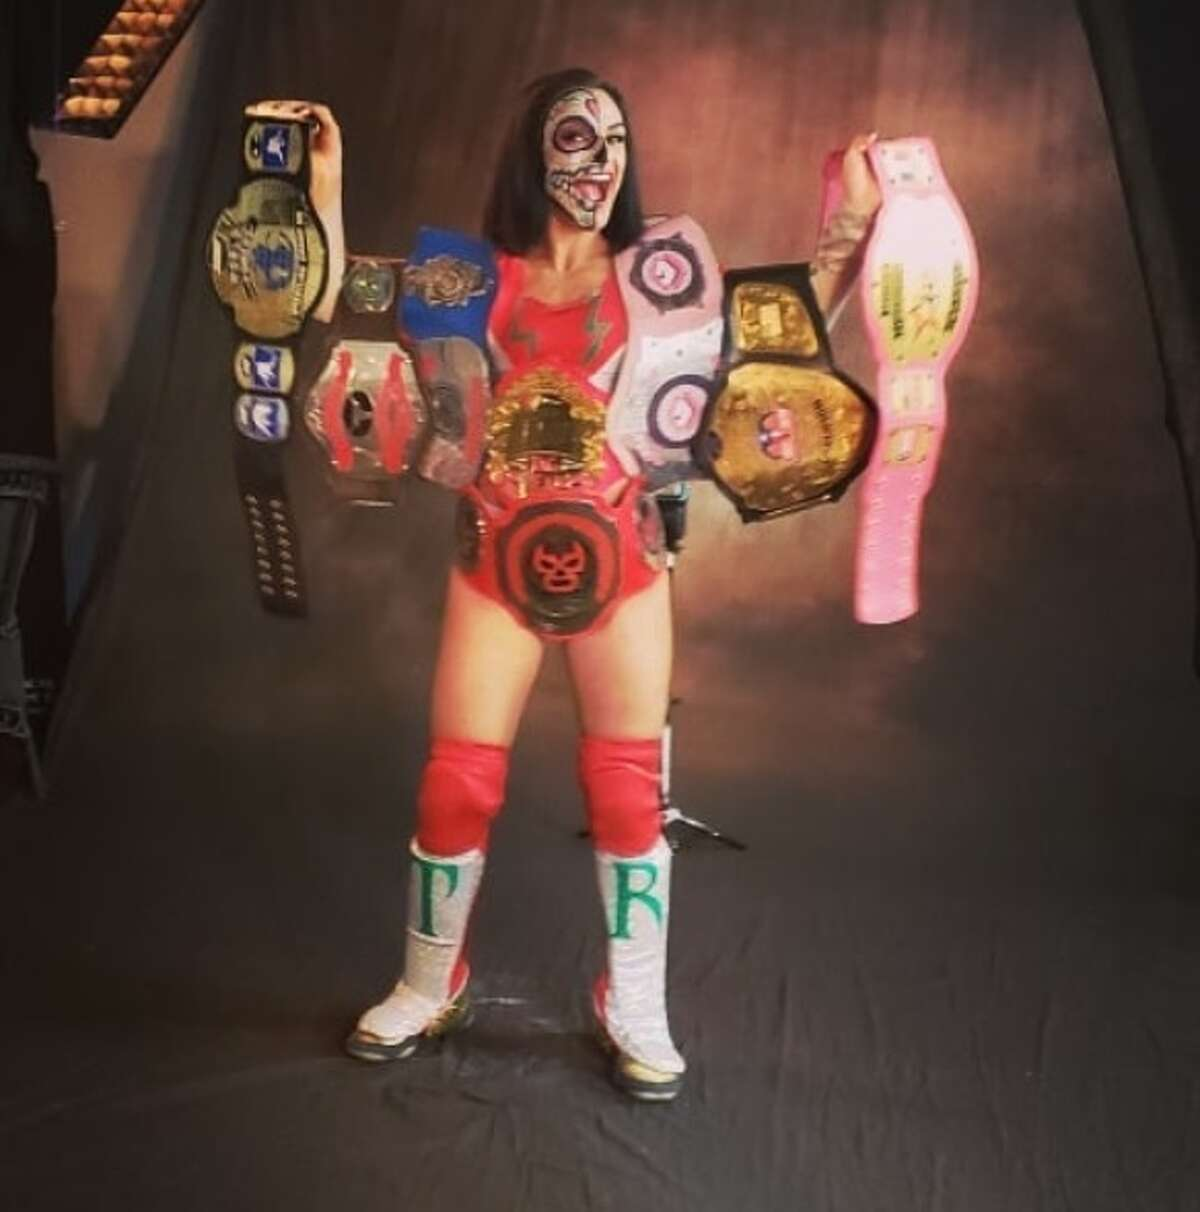 The San Antonio pro-wrestler has 10 belts under her name (all of them not pictured).